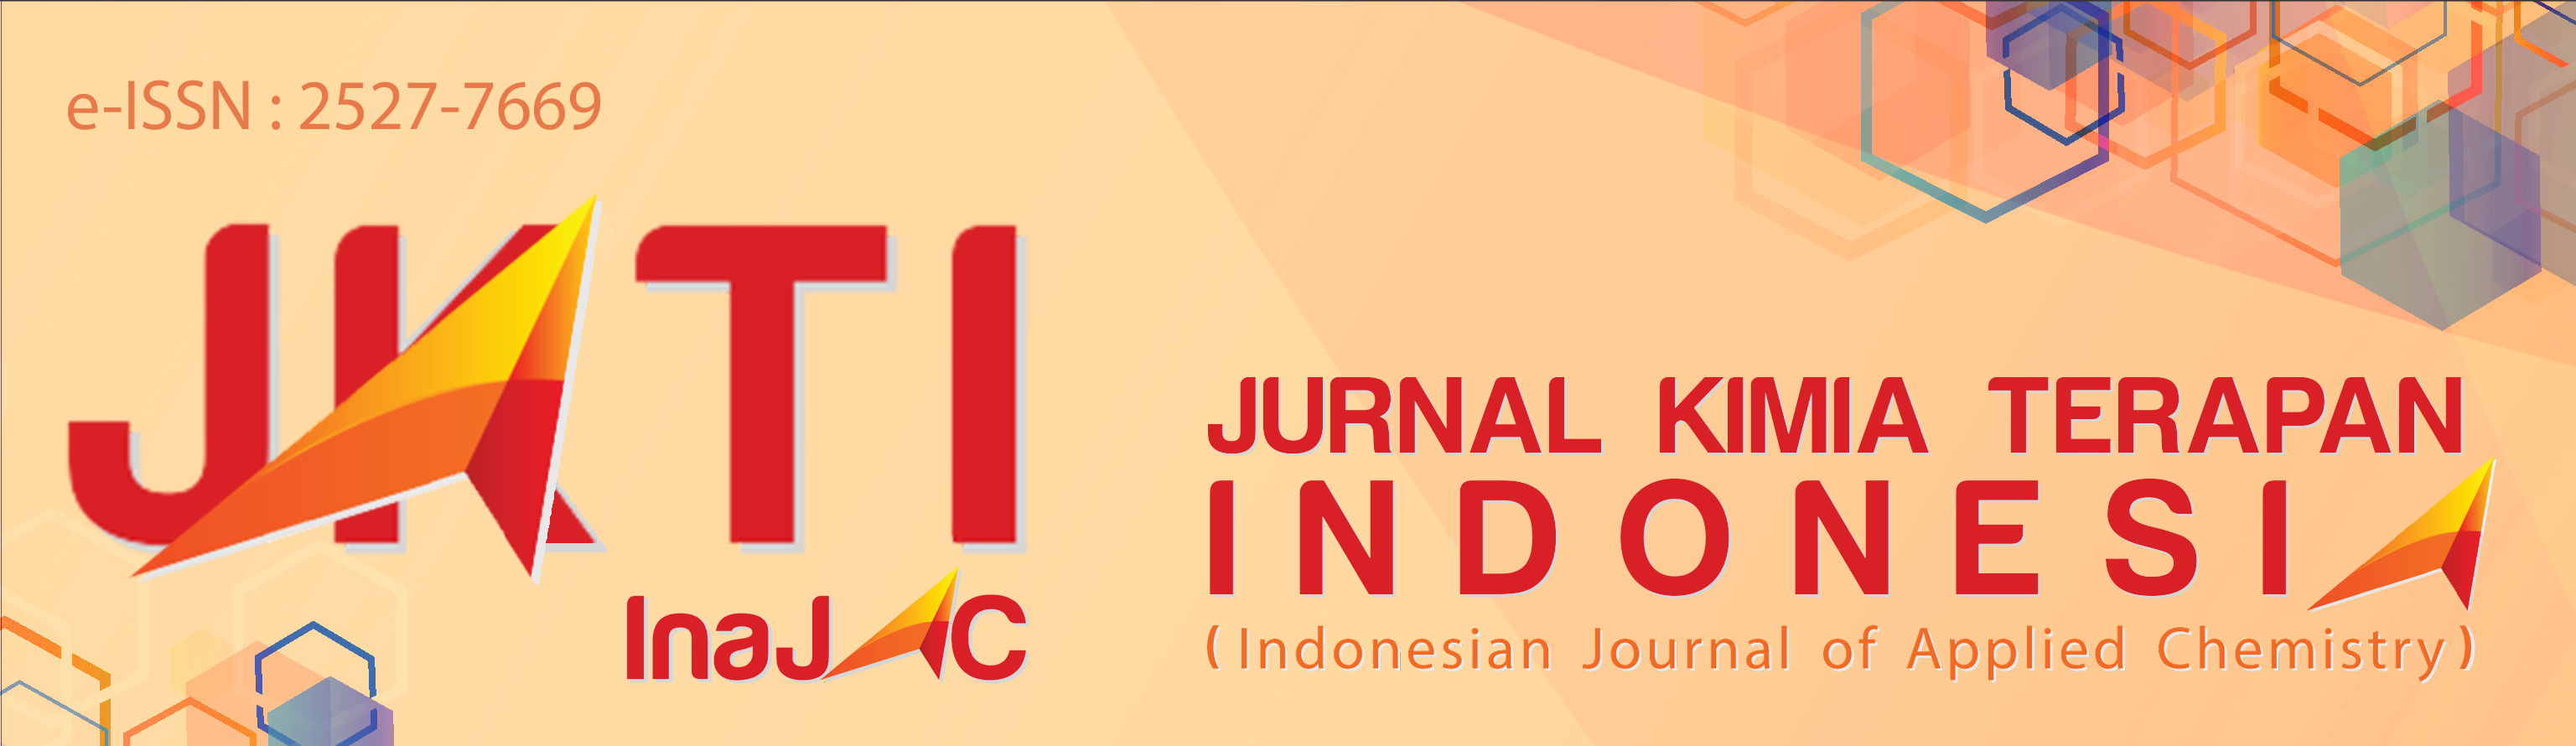 Jurnal Kimia Terapan Indonesia (Indonesian Journal of Applied Chemistry)